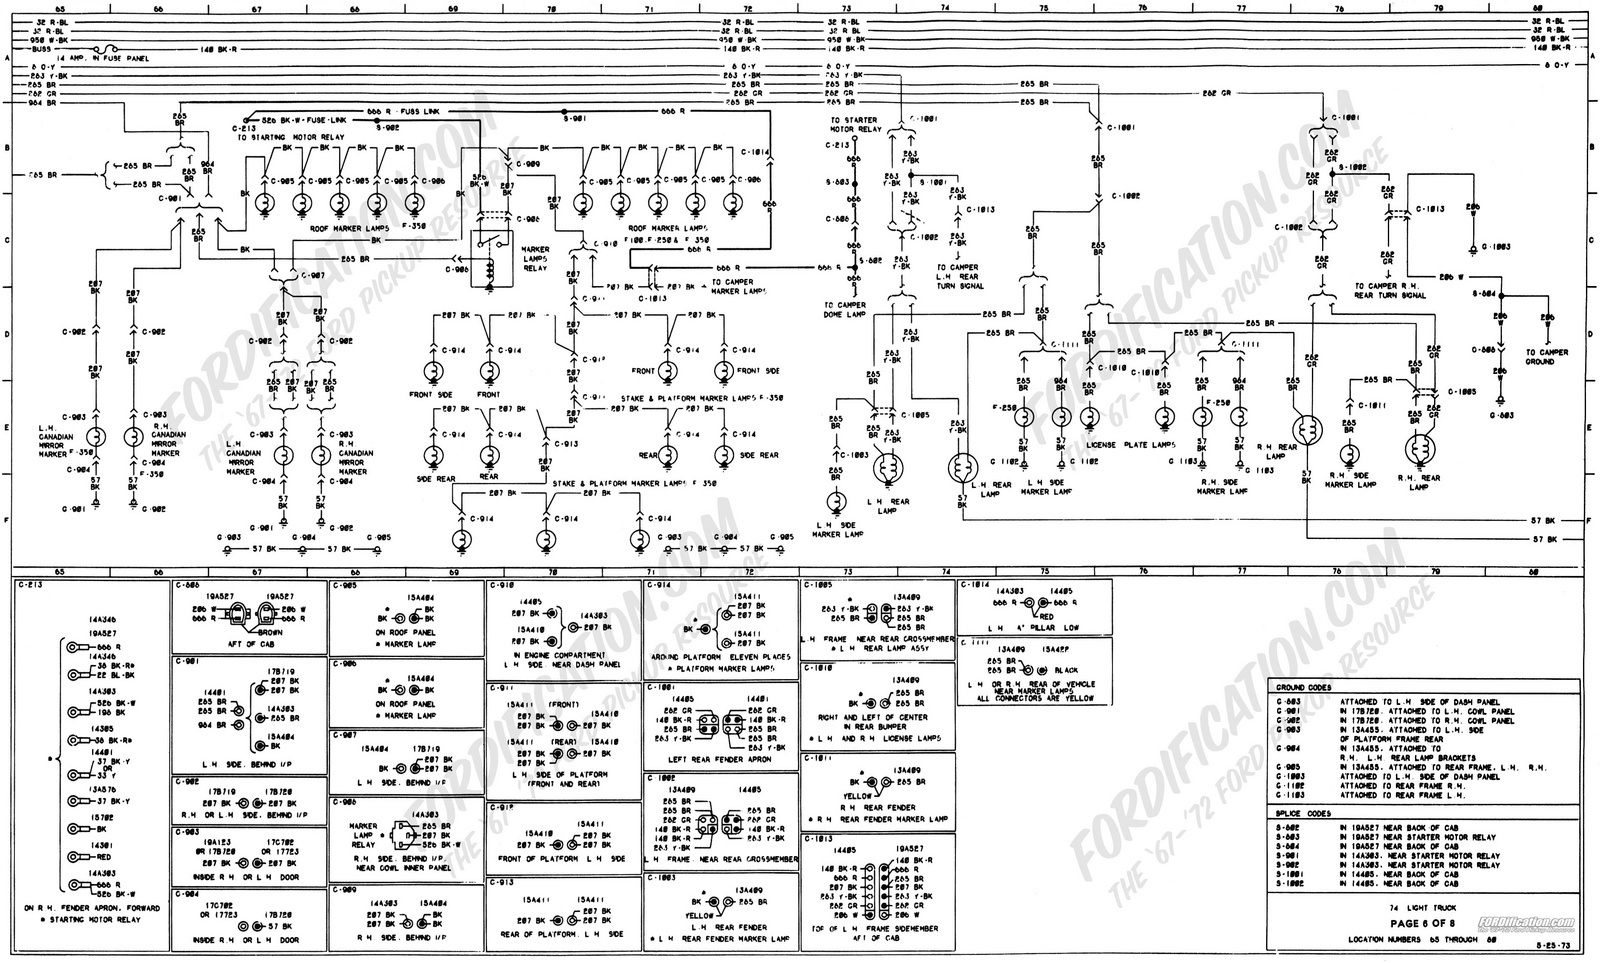 ford f 150 wiring diagram wiring diagram databaseford f 150 questions are the taillights wired to the highbeam ford f 150 ignition switch wiring diagram ford f 150 wiring diagram